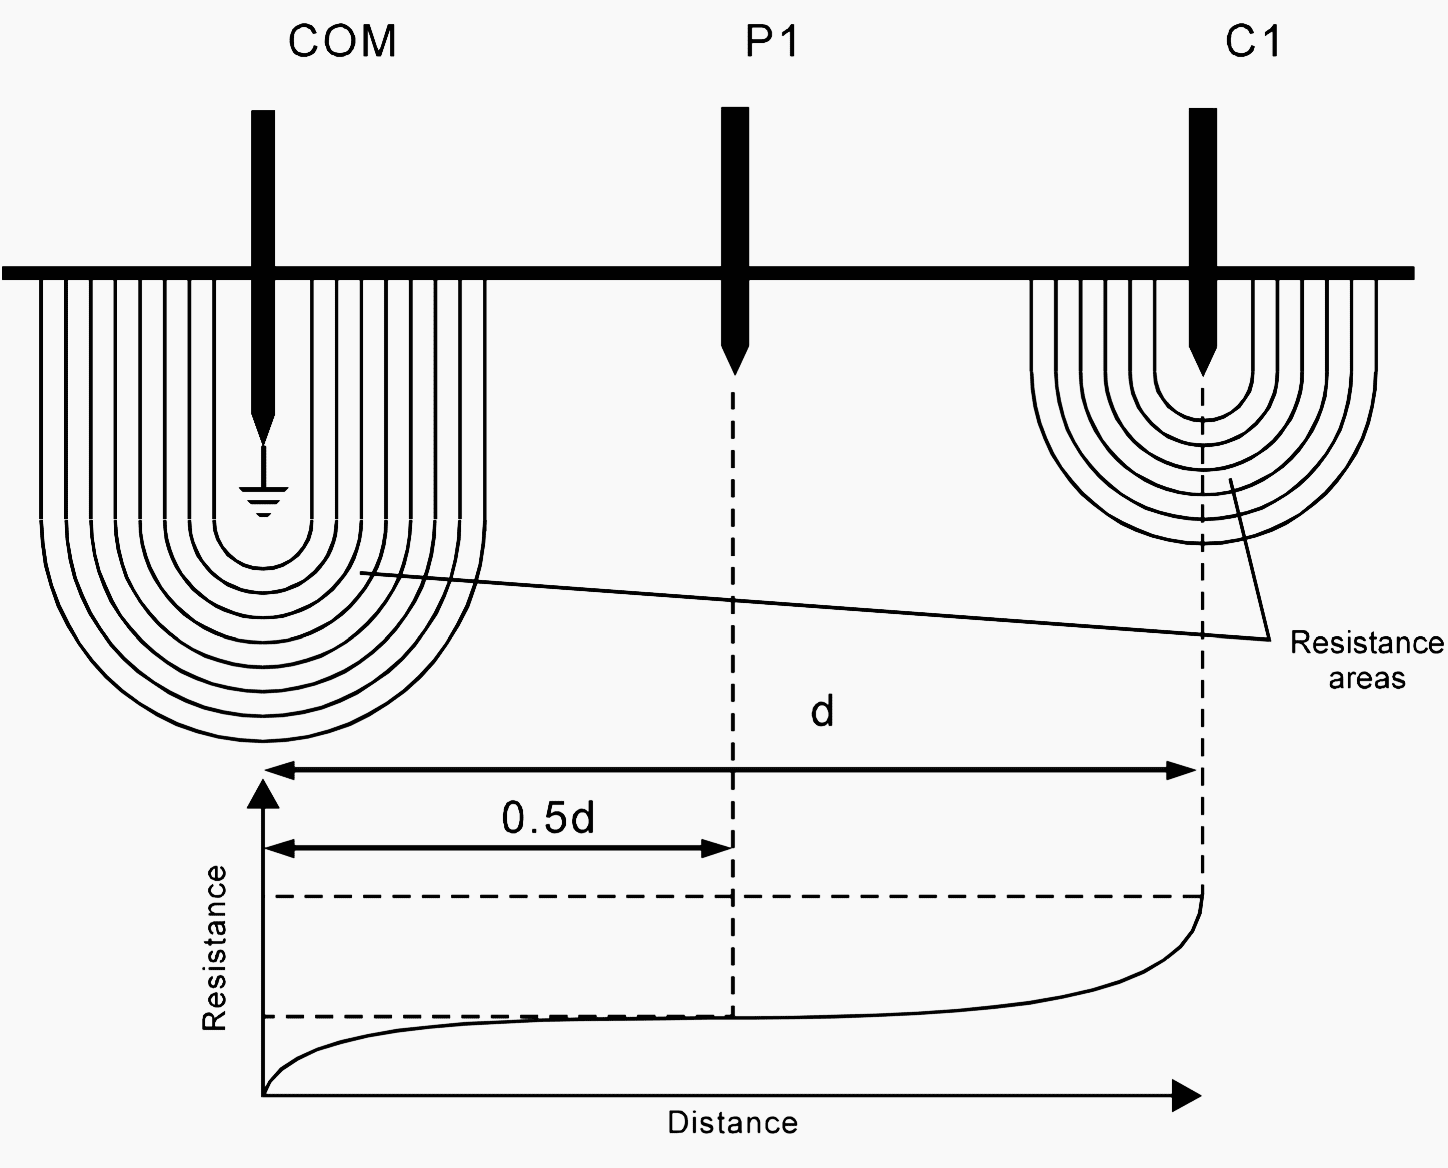 Resistance areas and the variation of the measured resistance with voltage electrode position